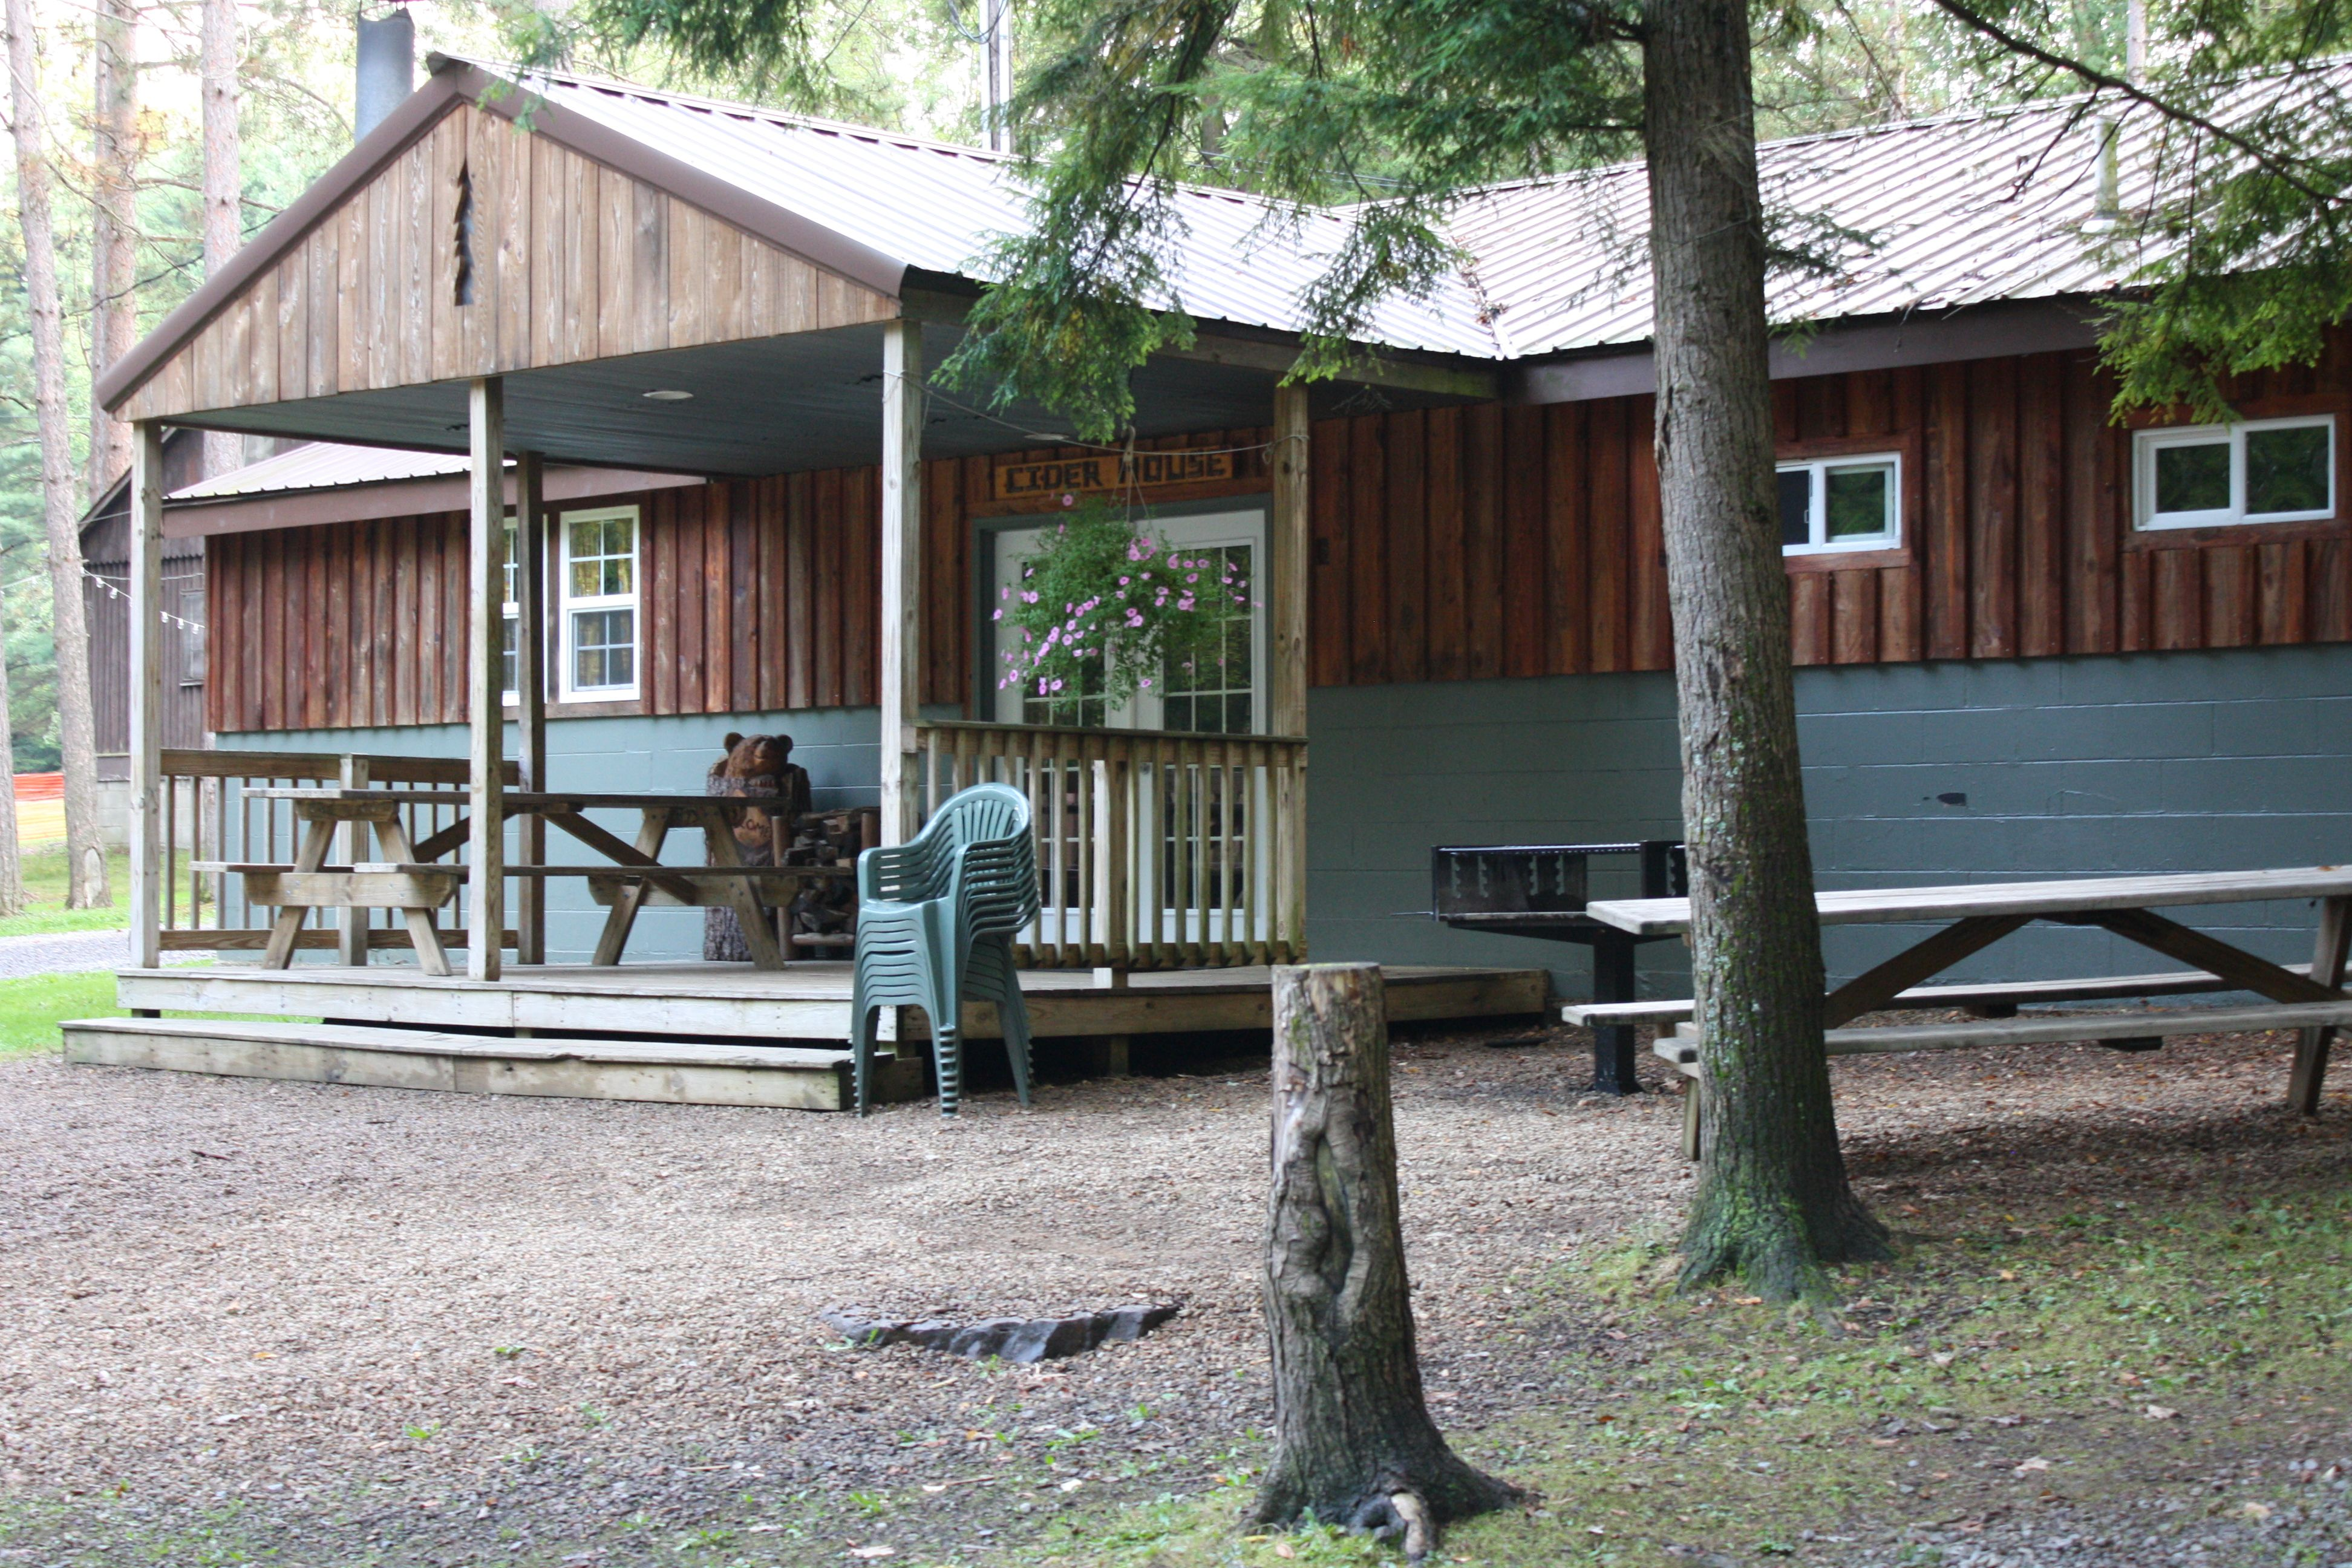 Cider House Lodge Sleeps Up To 16 Guests And Is Currently Available For The Last Weekend Of April 27 29 For The Winter Rate O Forest Cabin Forest Cabin Rentals